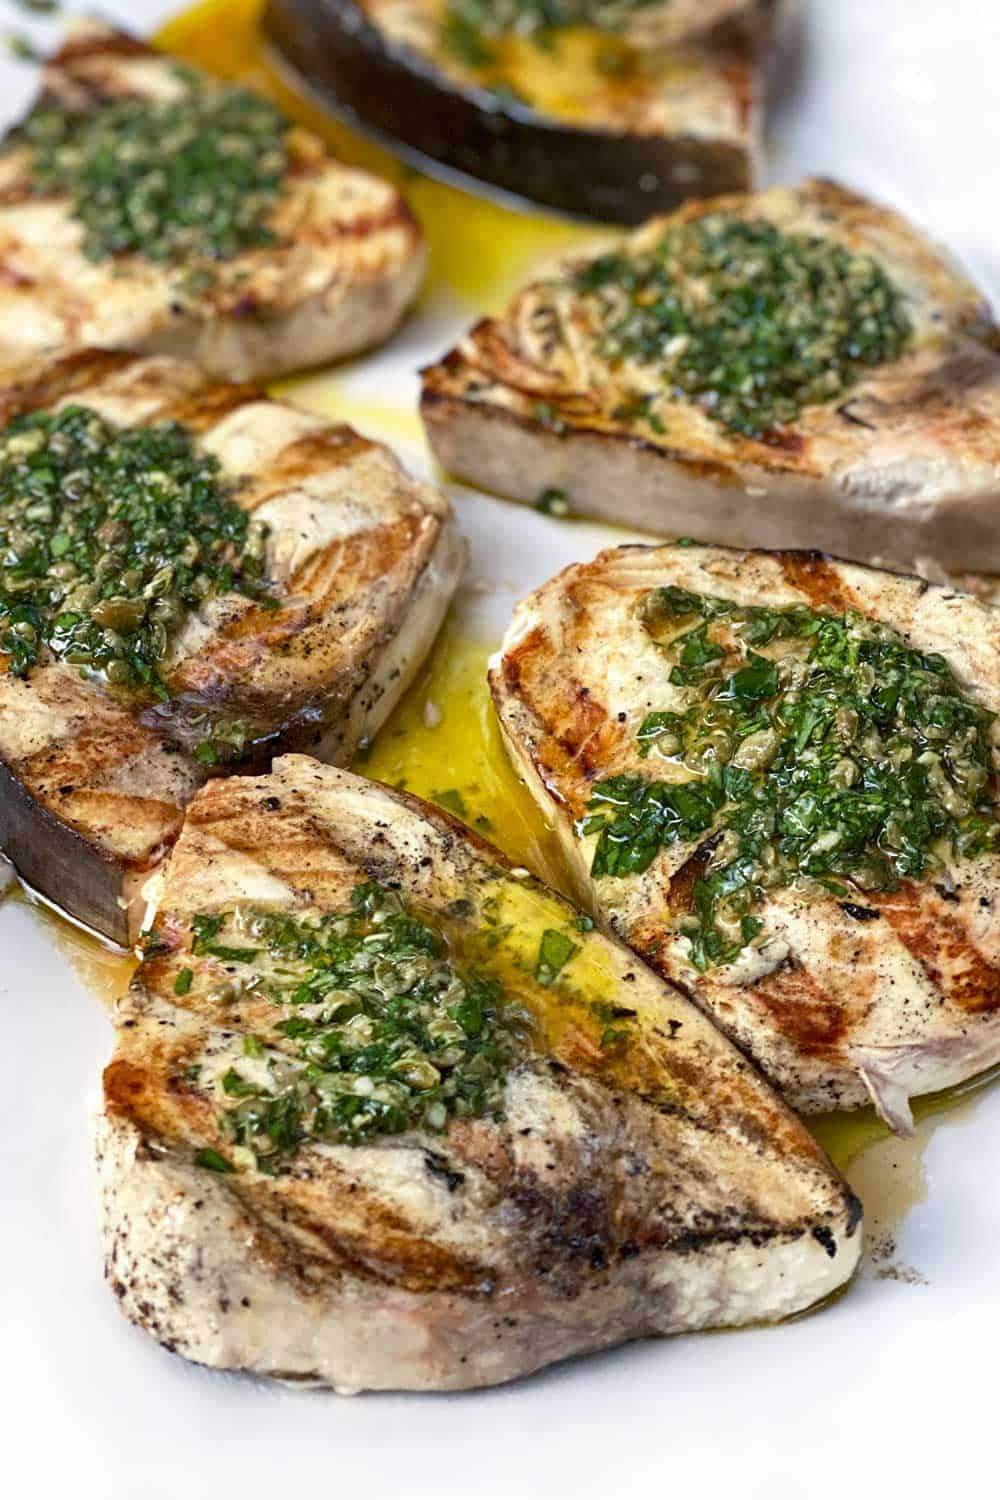 5 grilled swordfish steaks topped with green salsa verde